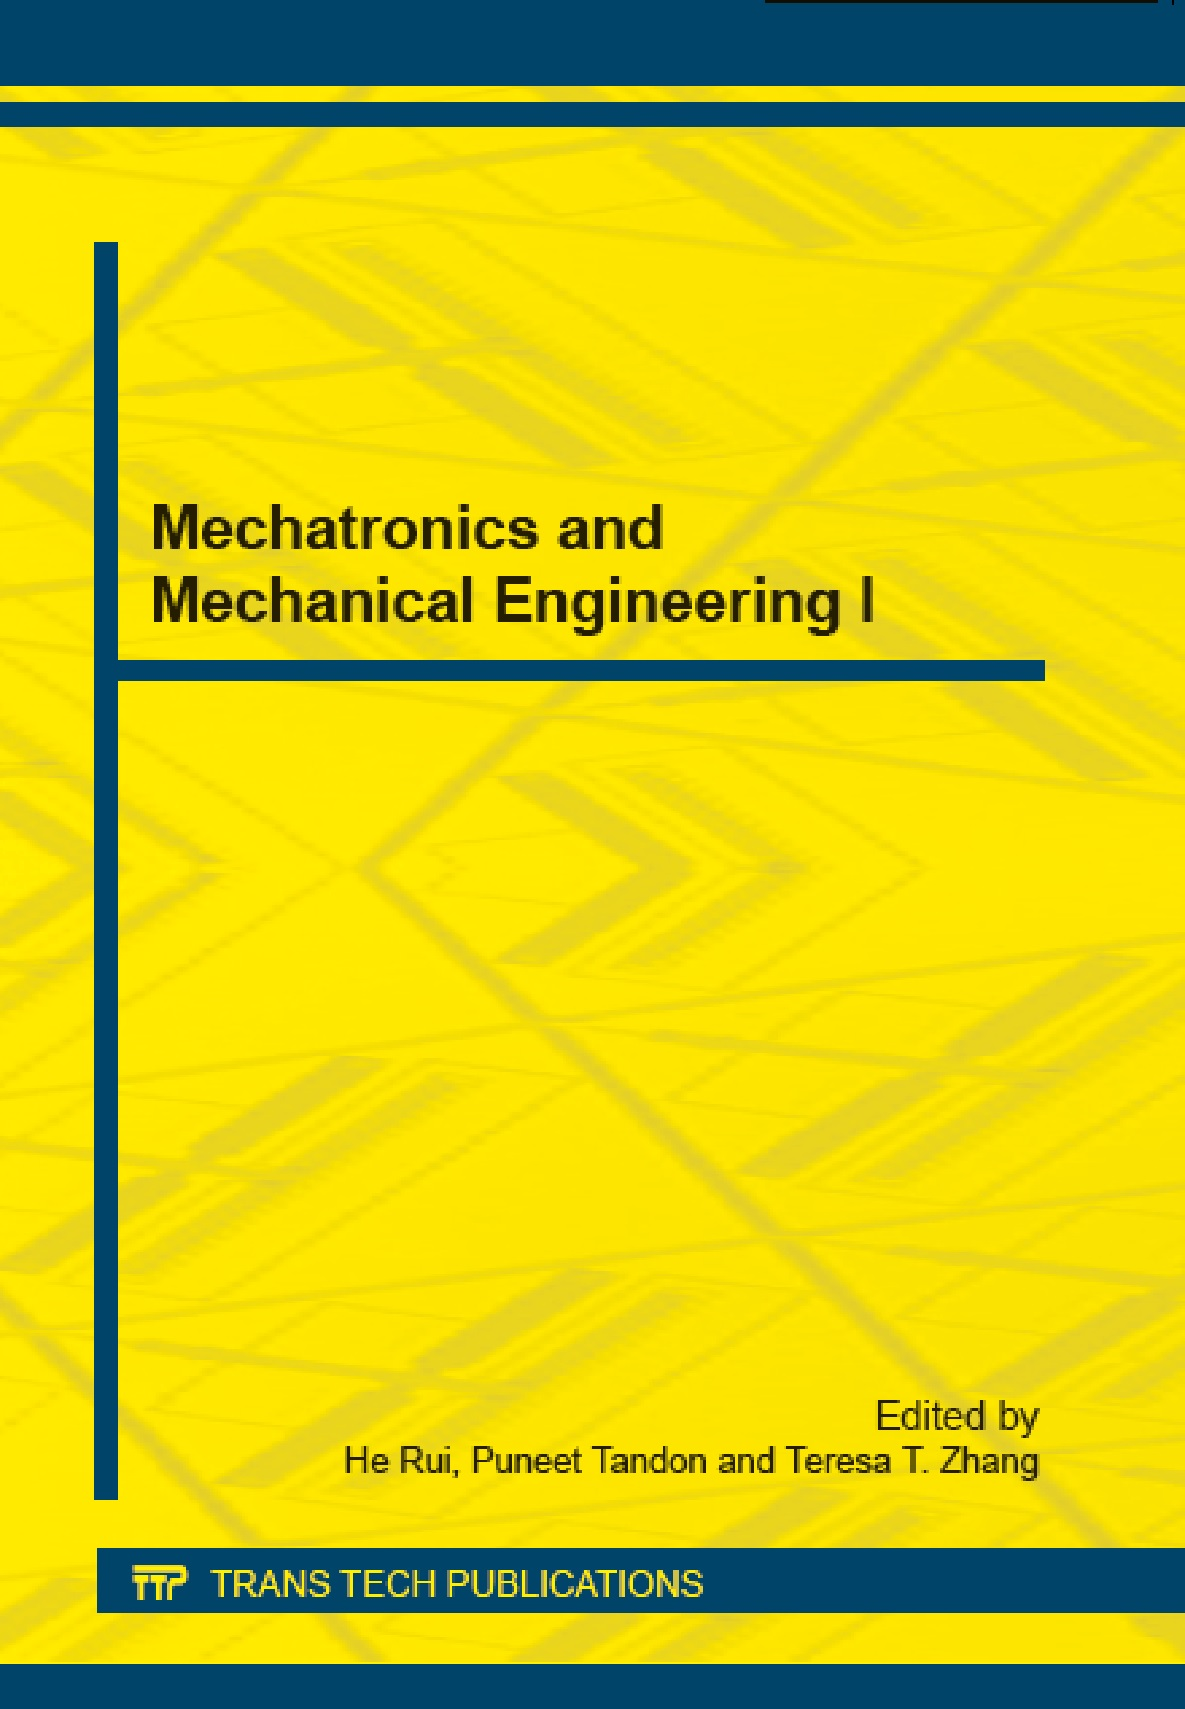 Mechatronics and Mechanical Engineering I